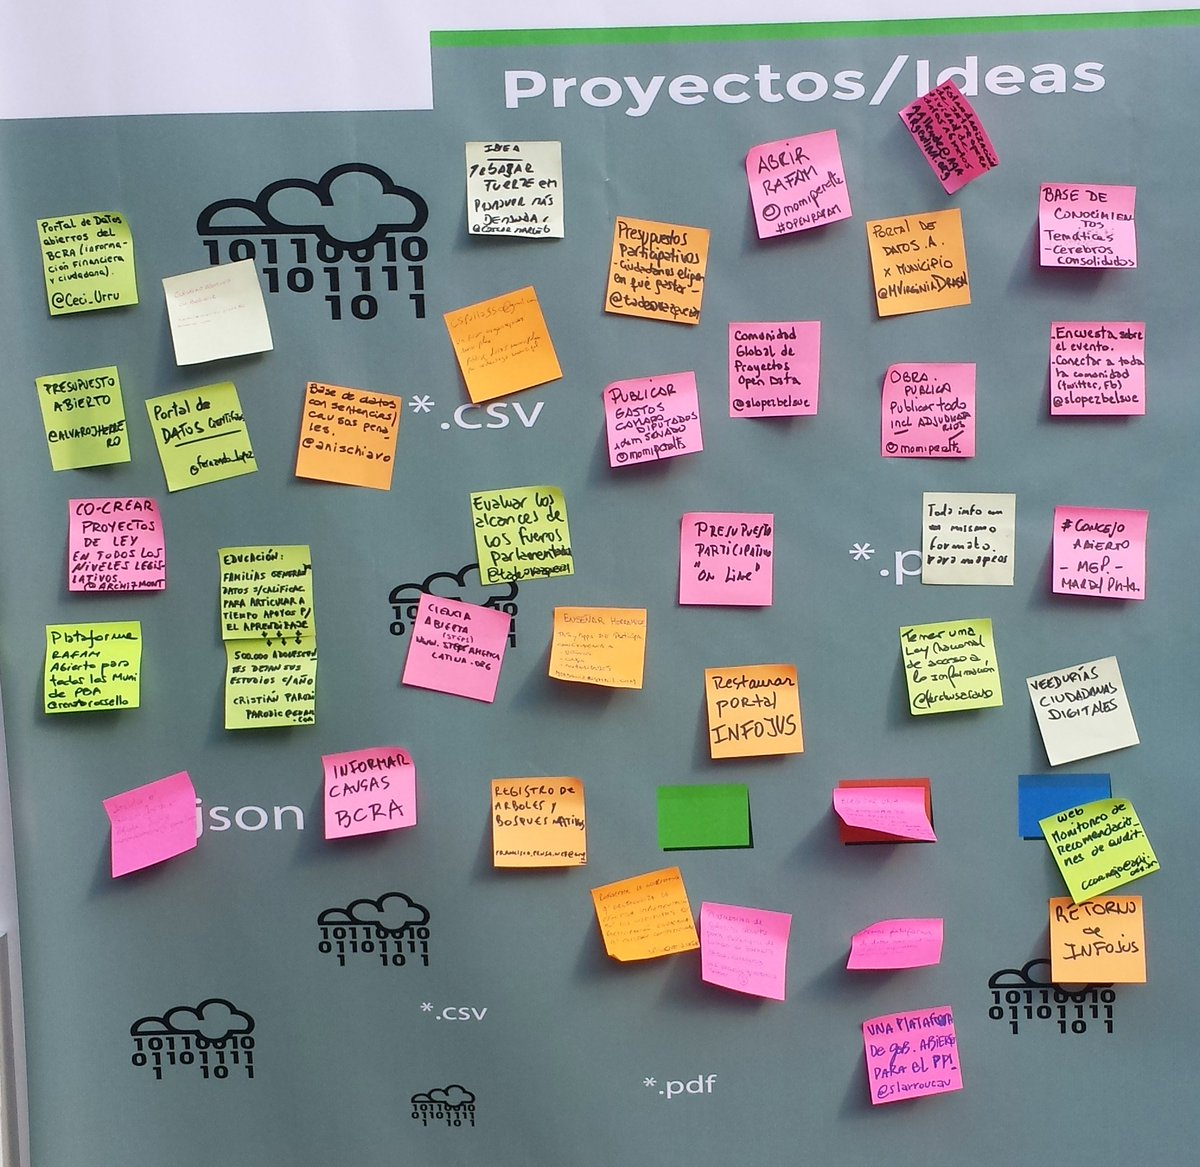 Ideas & Proyectos! @OKFNAR  #OpenDataDay #Argentina https://t.co/29YNzuhVXG